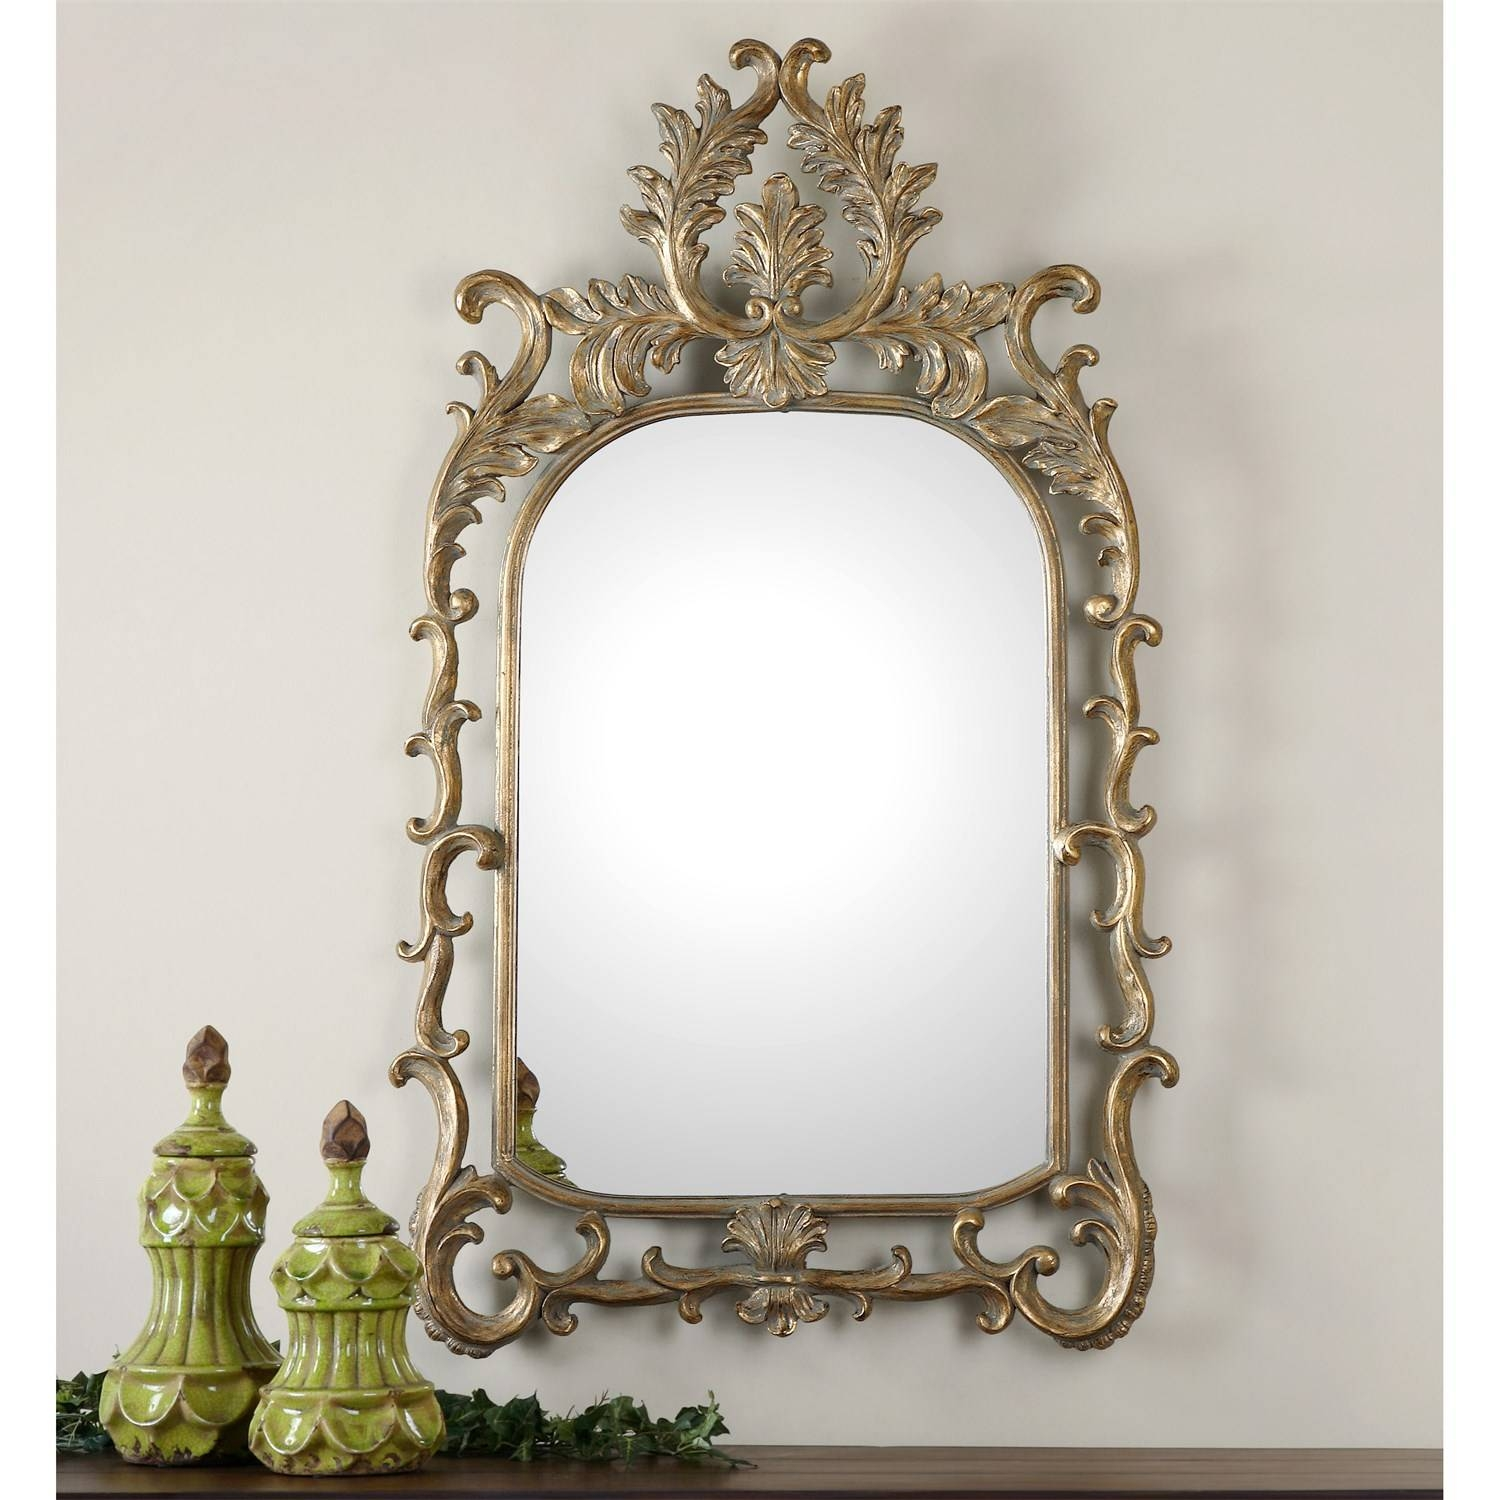 Uttermost 08117 Abelia Arch Mirror In Antiqued Gold Leaf for Gold Arch Mirrors (Image 22 of 25)